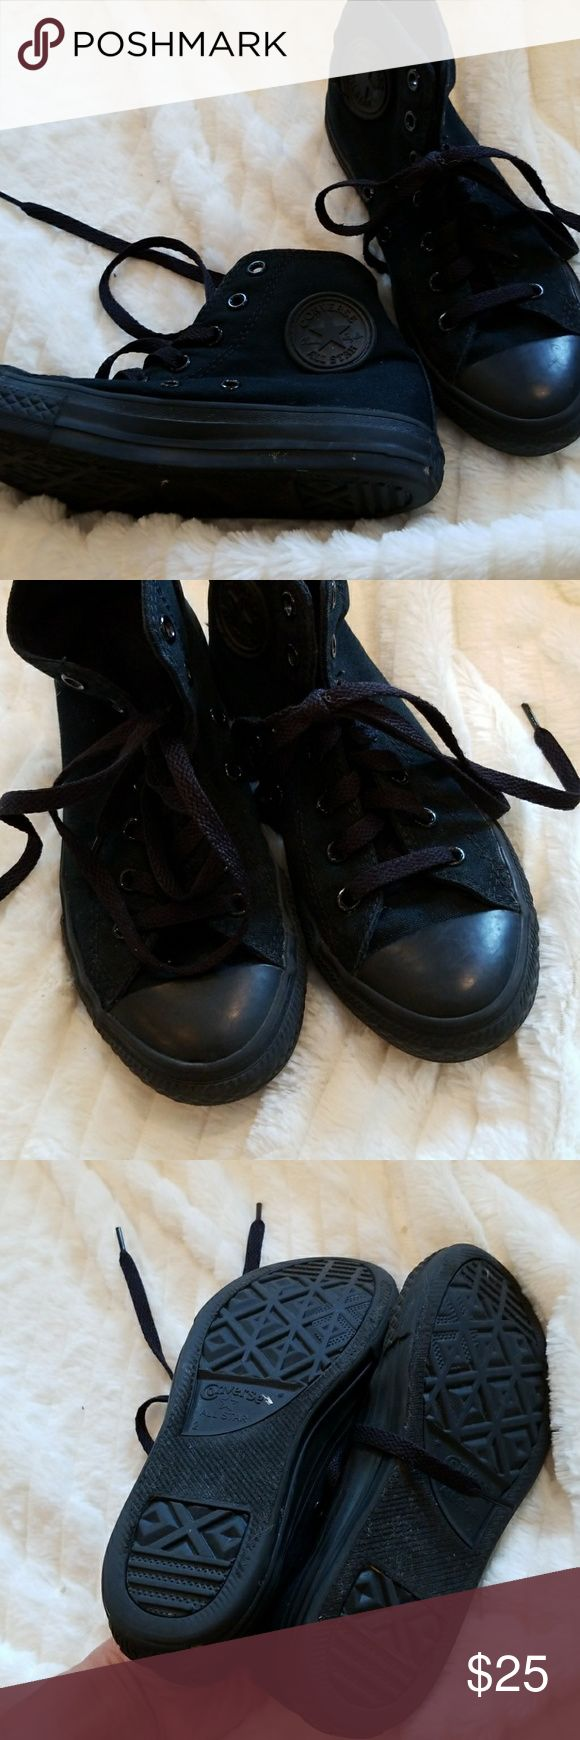 CONVERSE ALL BLACK HIGH TOPS-Unisex Excellent cond Worn very little and in excellent condition. All black high tops for girls or boys. Converse Shoes Sneakers